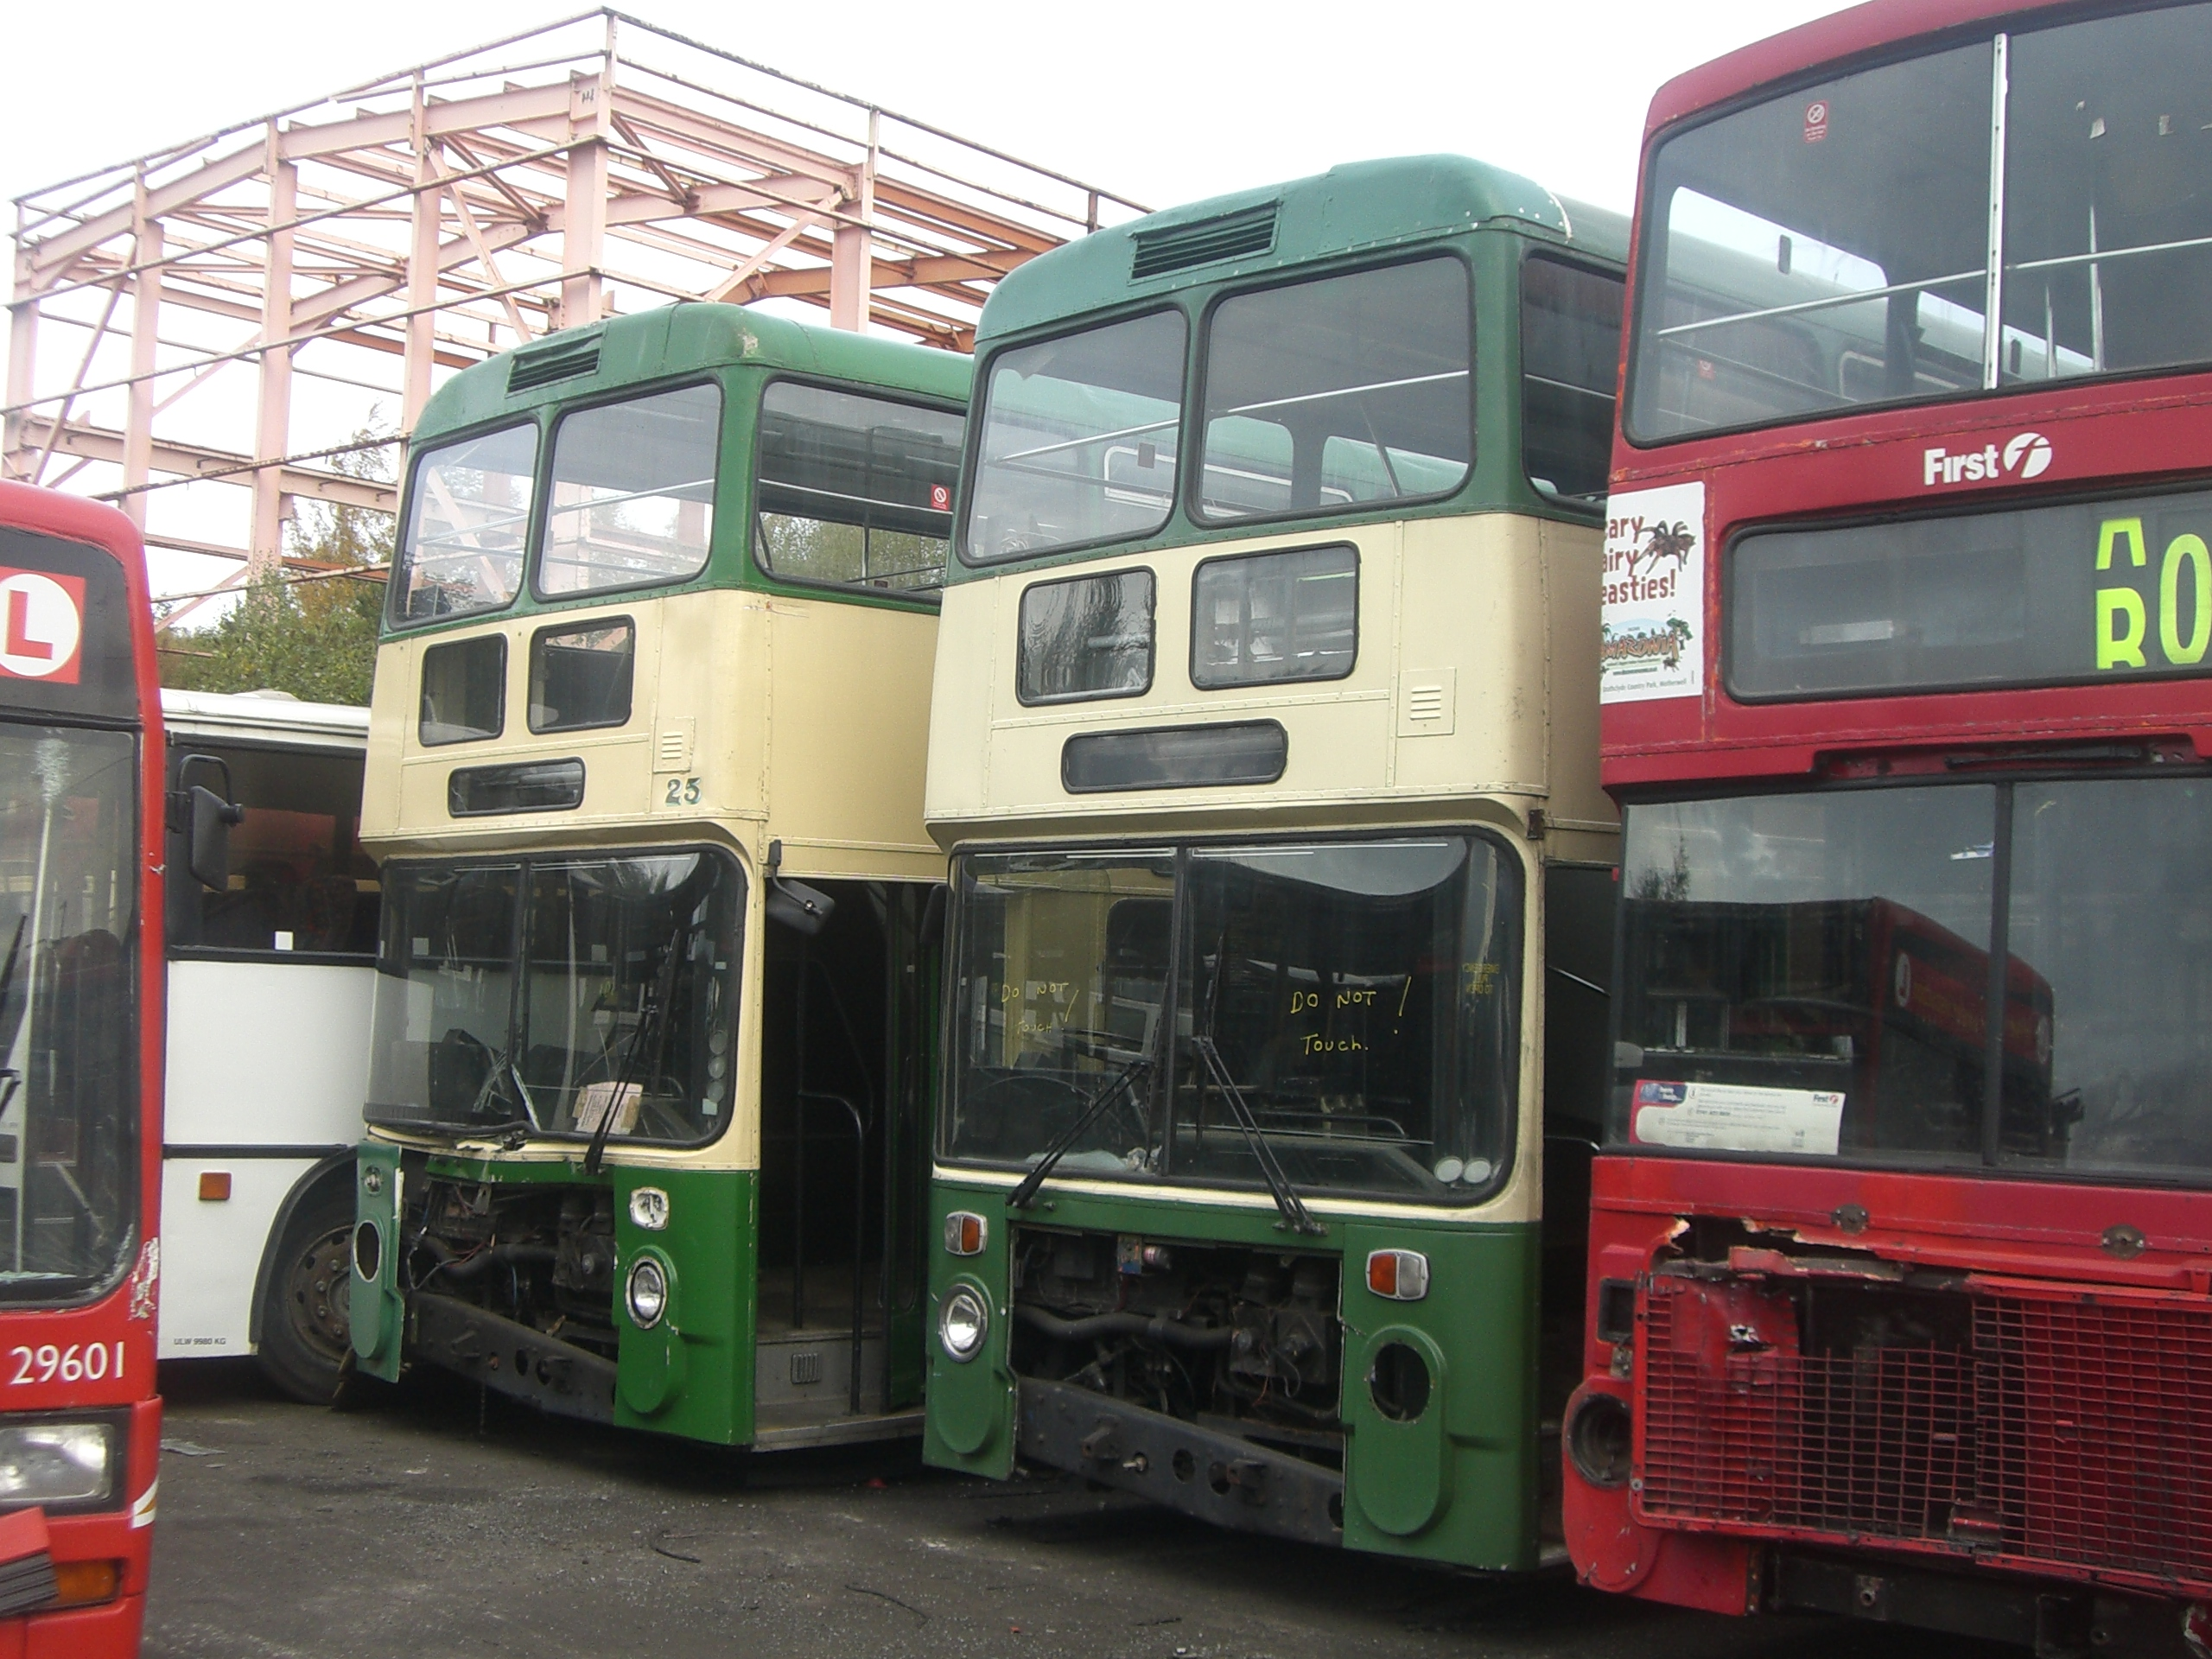 File:Buses at PVS Barnsley breakers, 11 October 2008.jpg - Wikimedia Commons